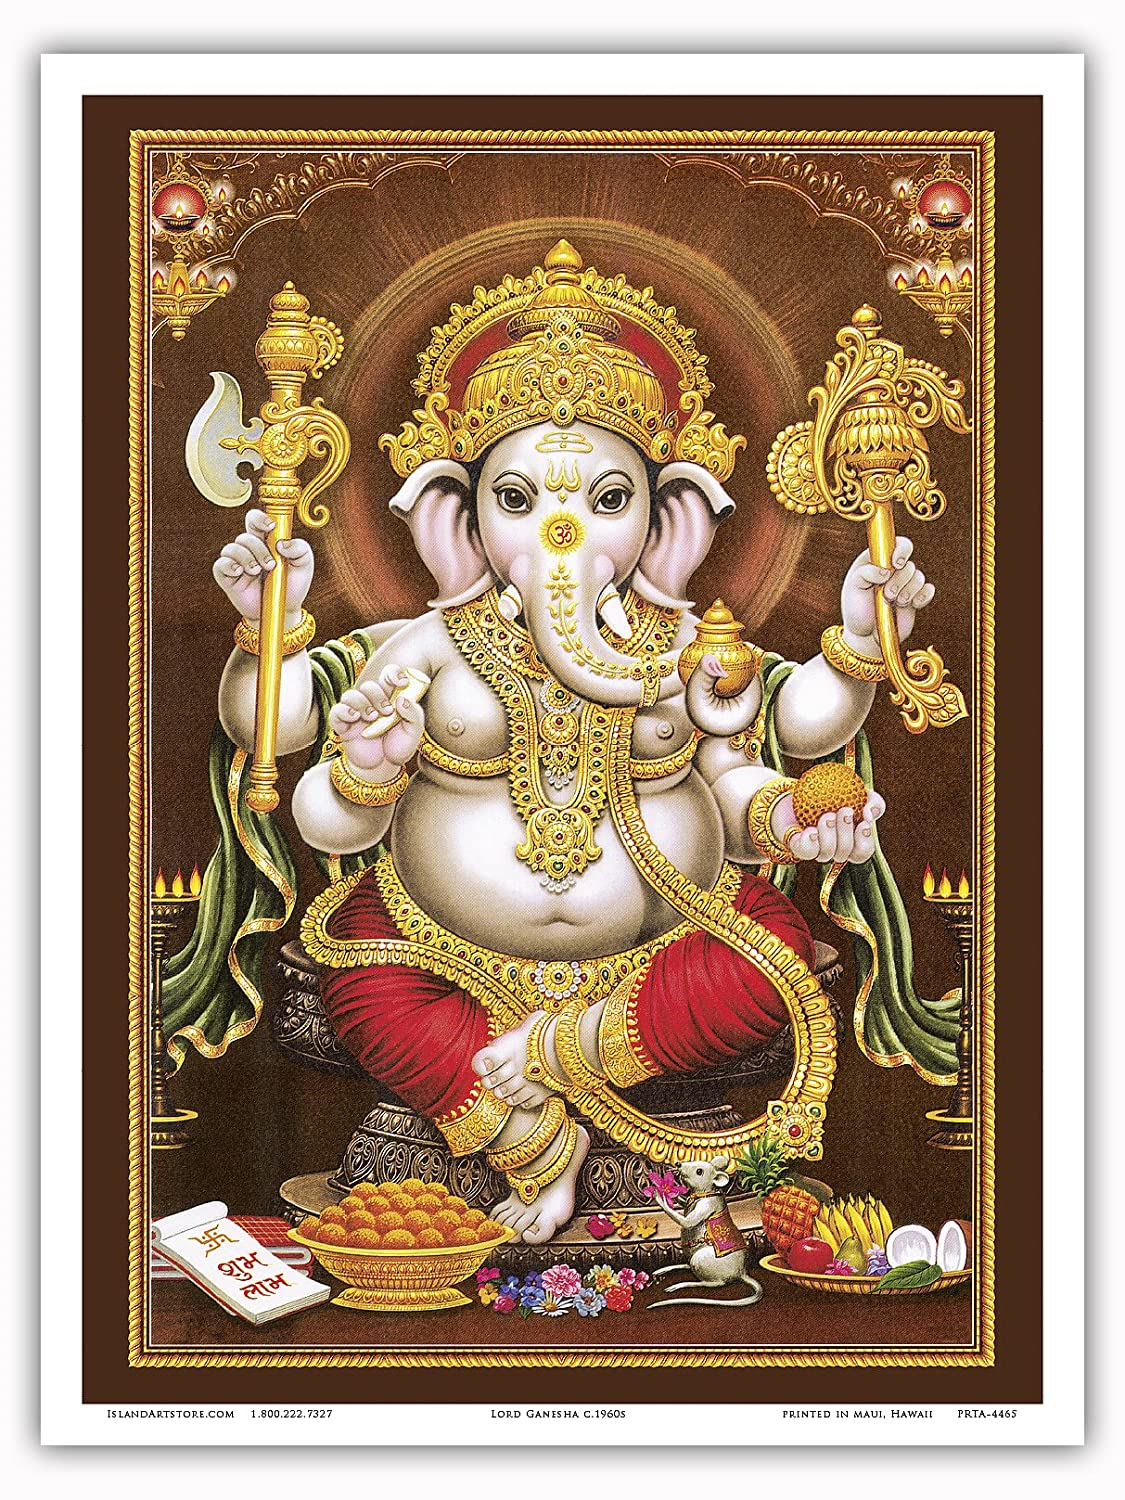 Original Religious Images c.1960s Knowledge and New Beginnings Lord Ganesha God of Wisdom Hindu Elephant Headed Deity Master Art Print 9in x 12in